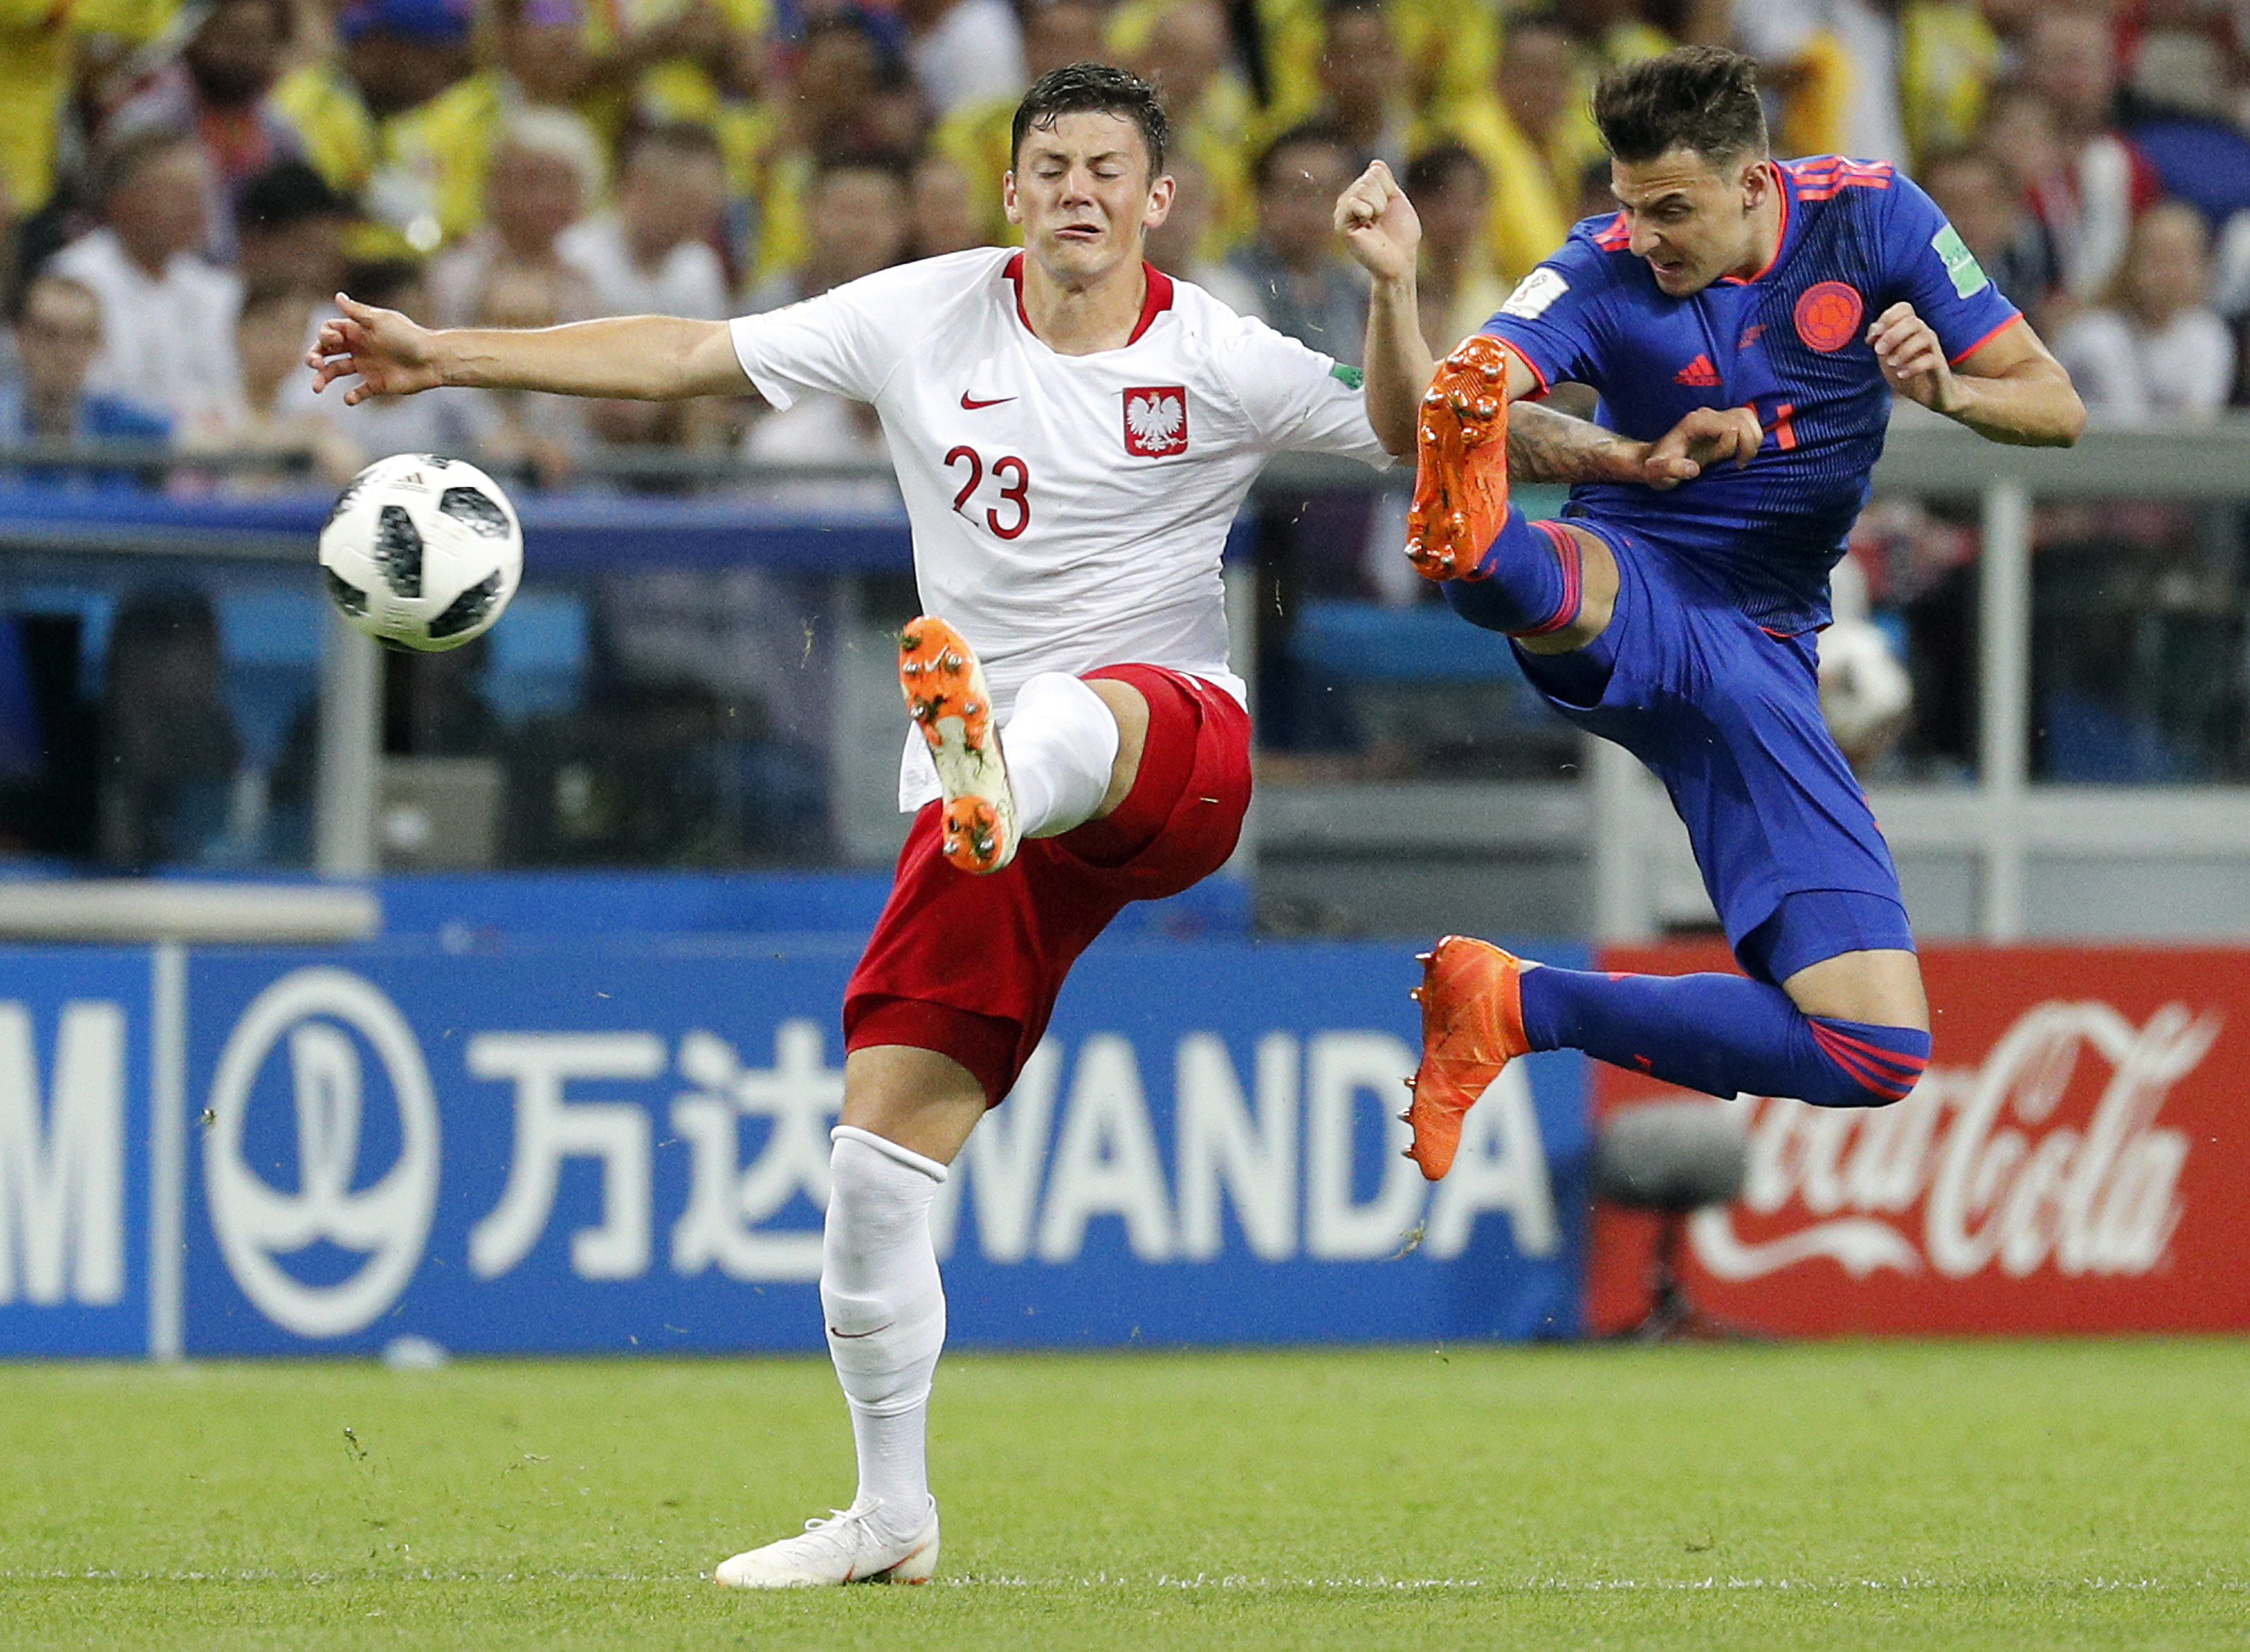 8dafdd576fe ... Colombia (R) and Dawid Kownacki of Poland in action the FIFA World Cup  2018 group H preliminary round soccer match between Poland and Colombia in  Kazan